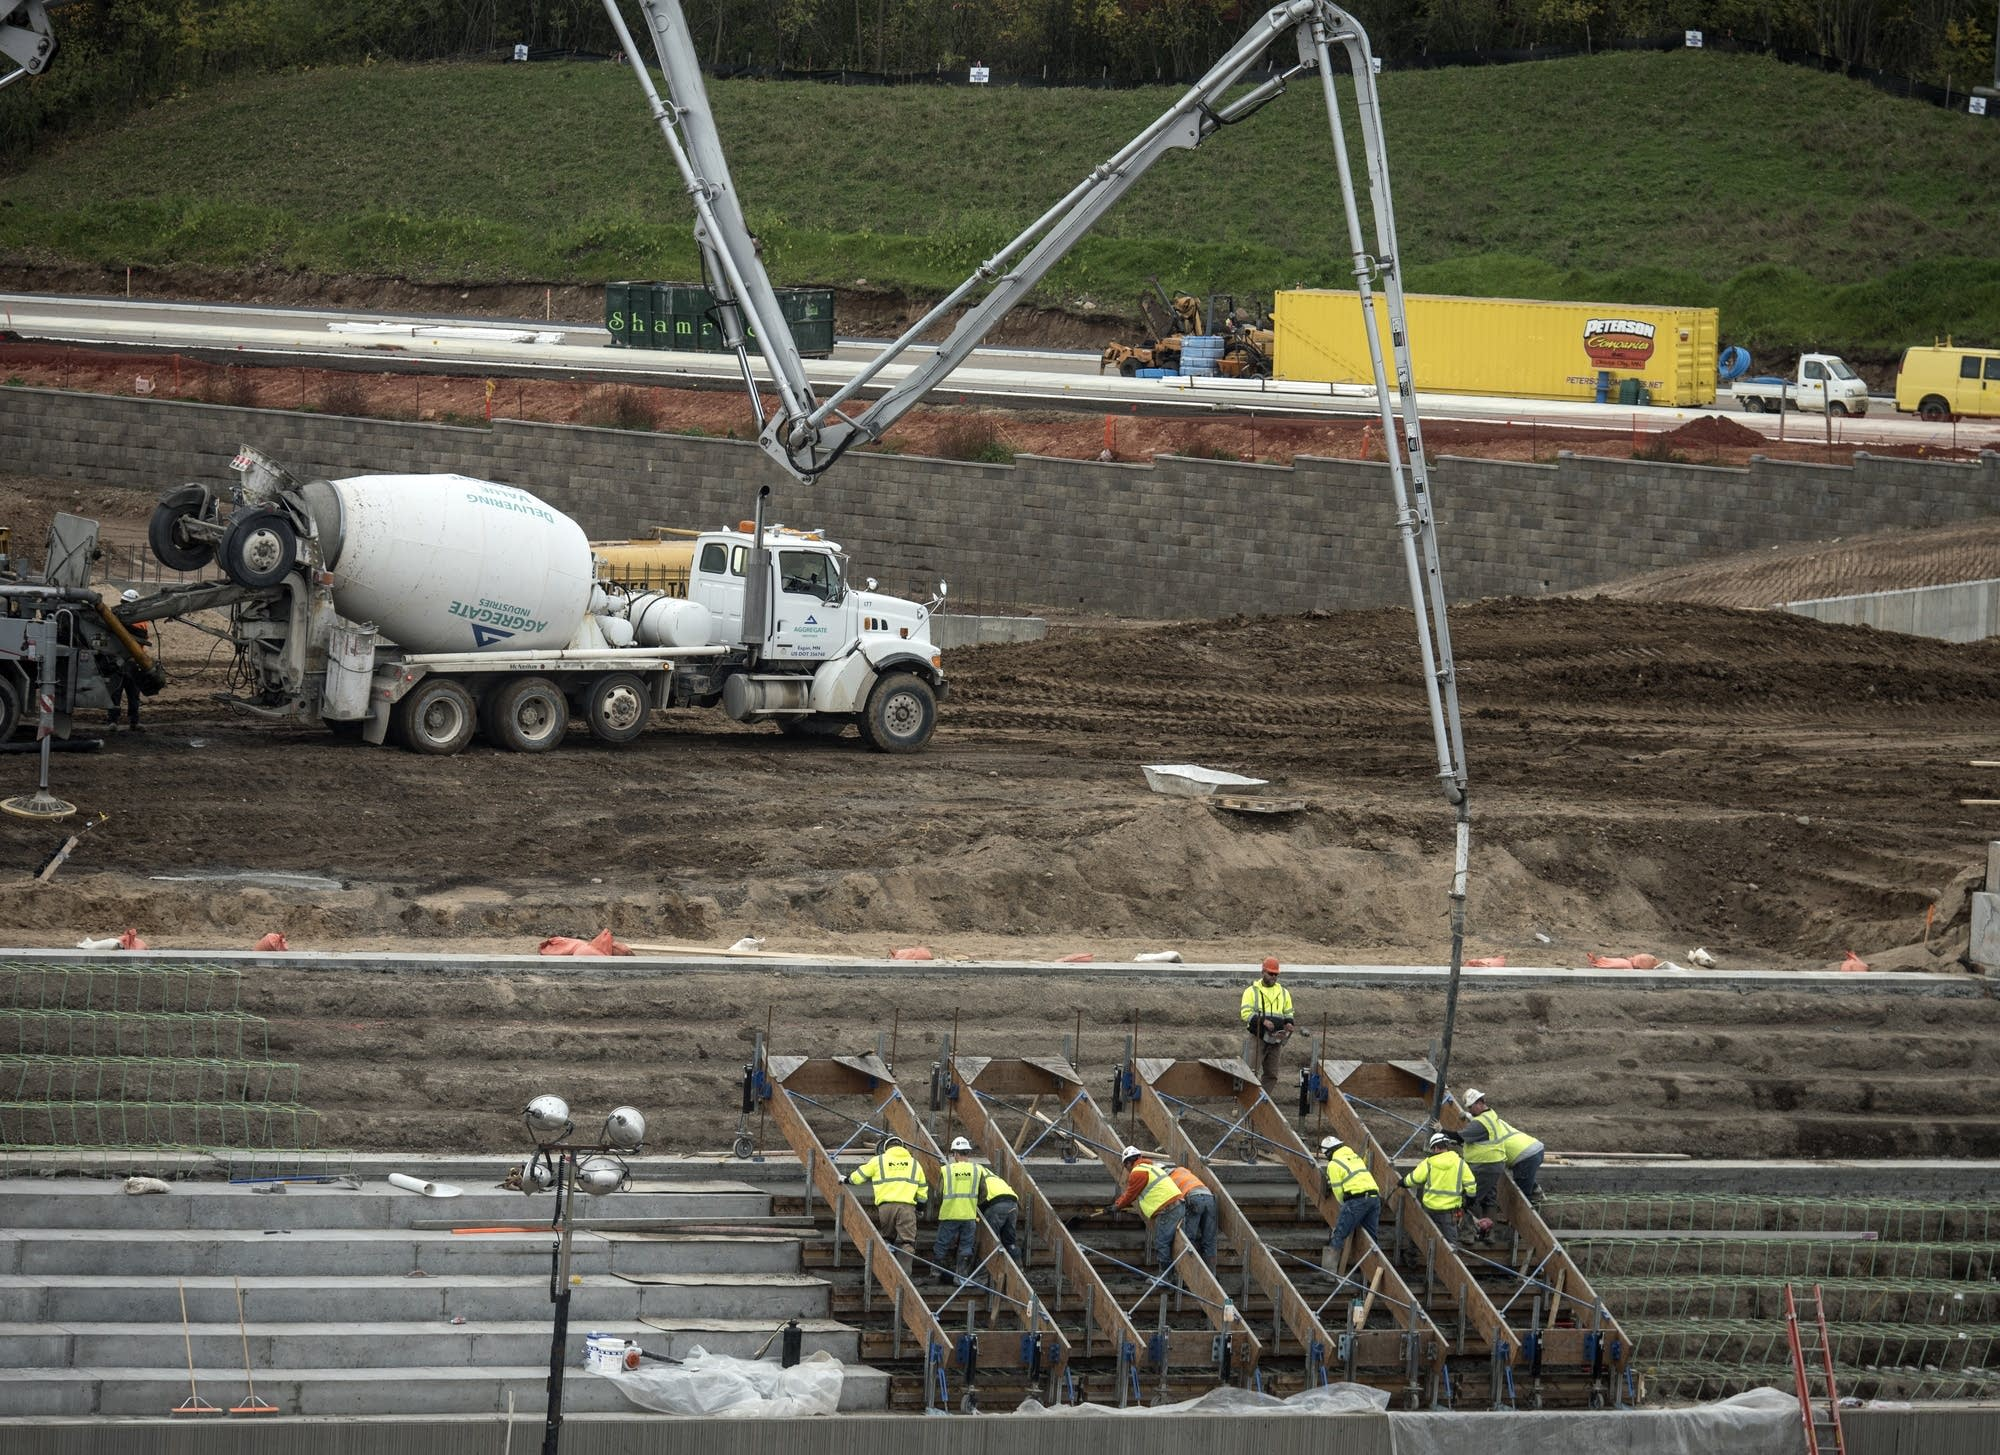 Workers pour concrete in the seating area of the outdoor stadium.